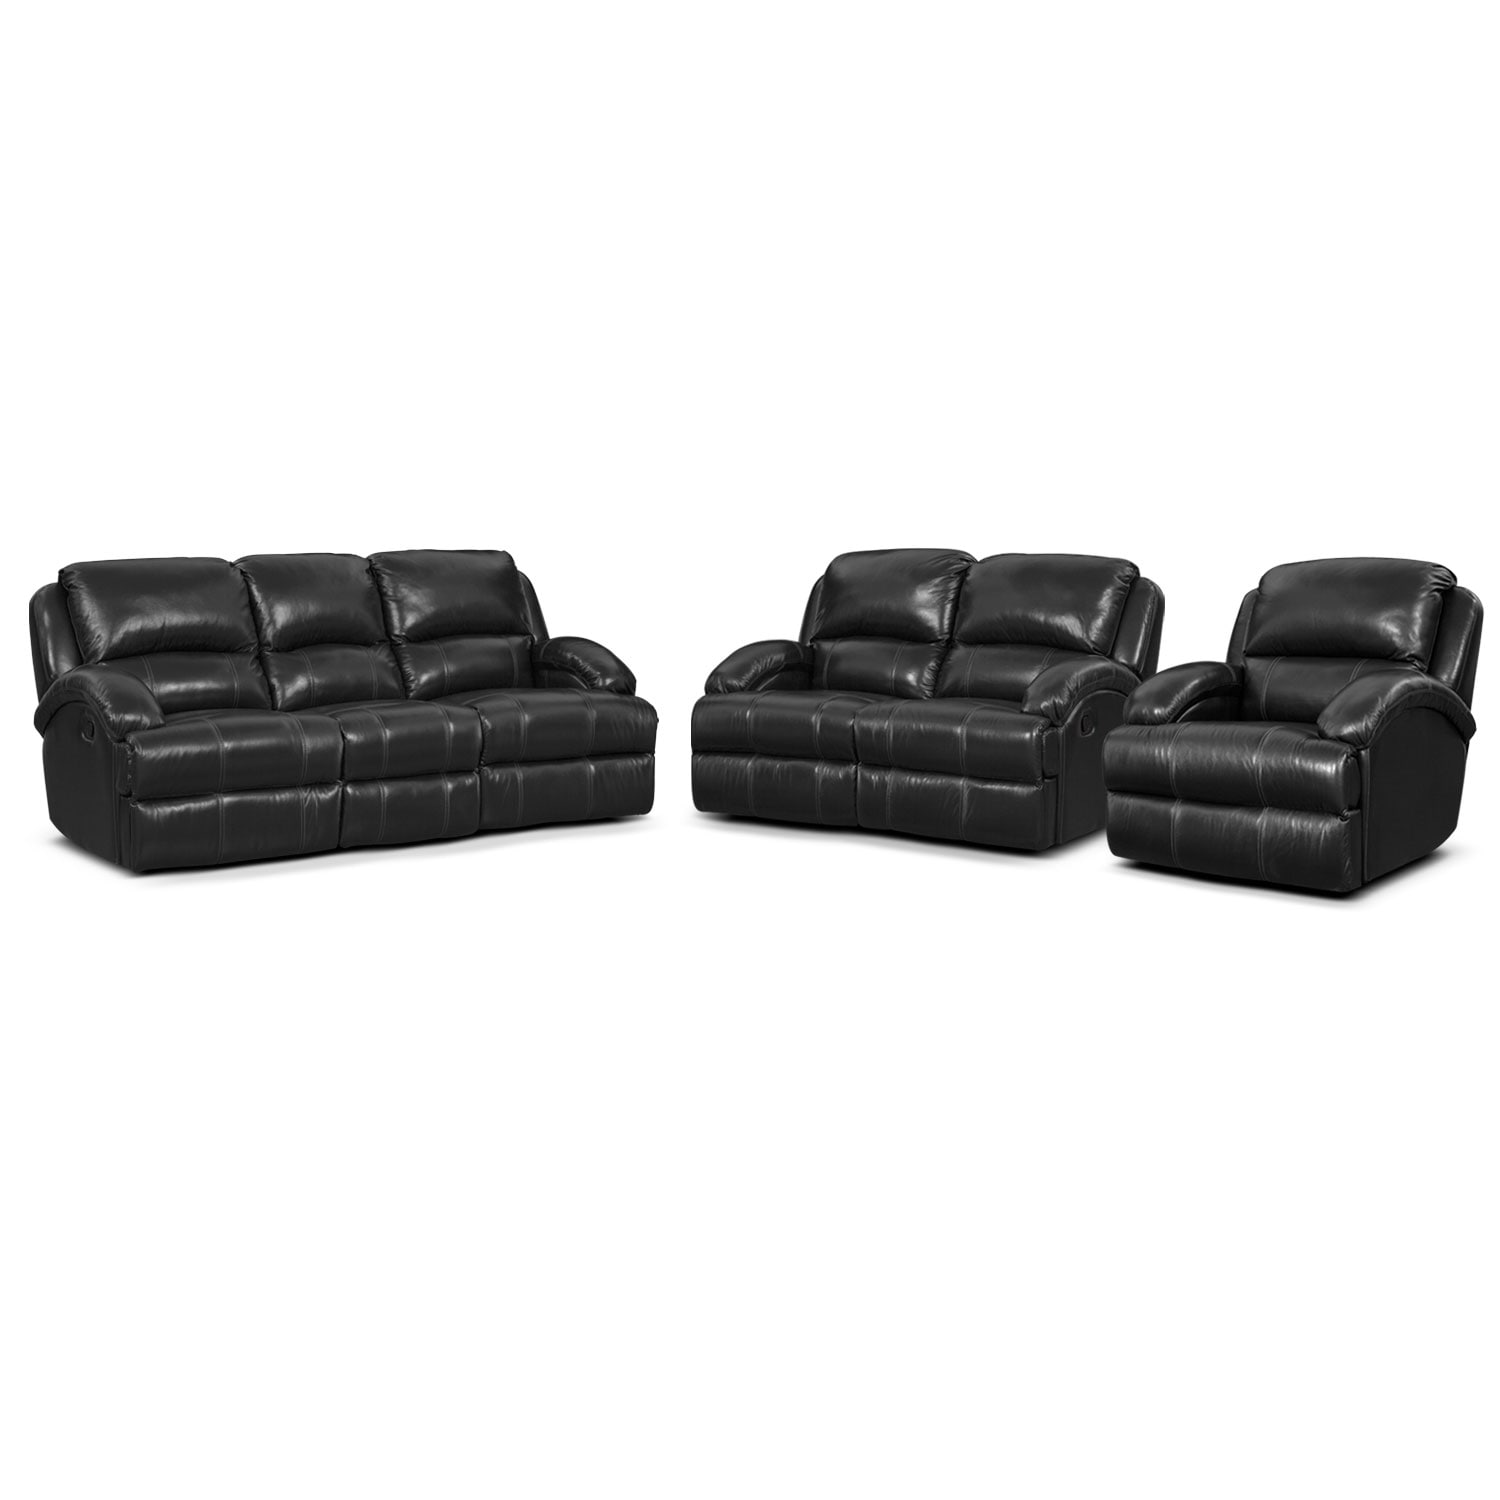 Living Room Furniture - Nolan Dual Reclining Sofa, Reclining Loveseat and Glider Recliner Set - Black